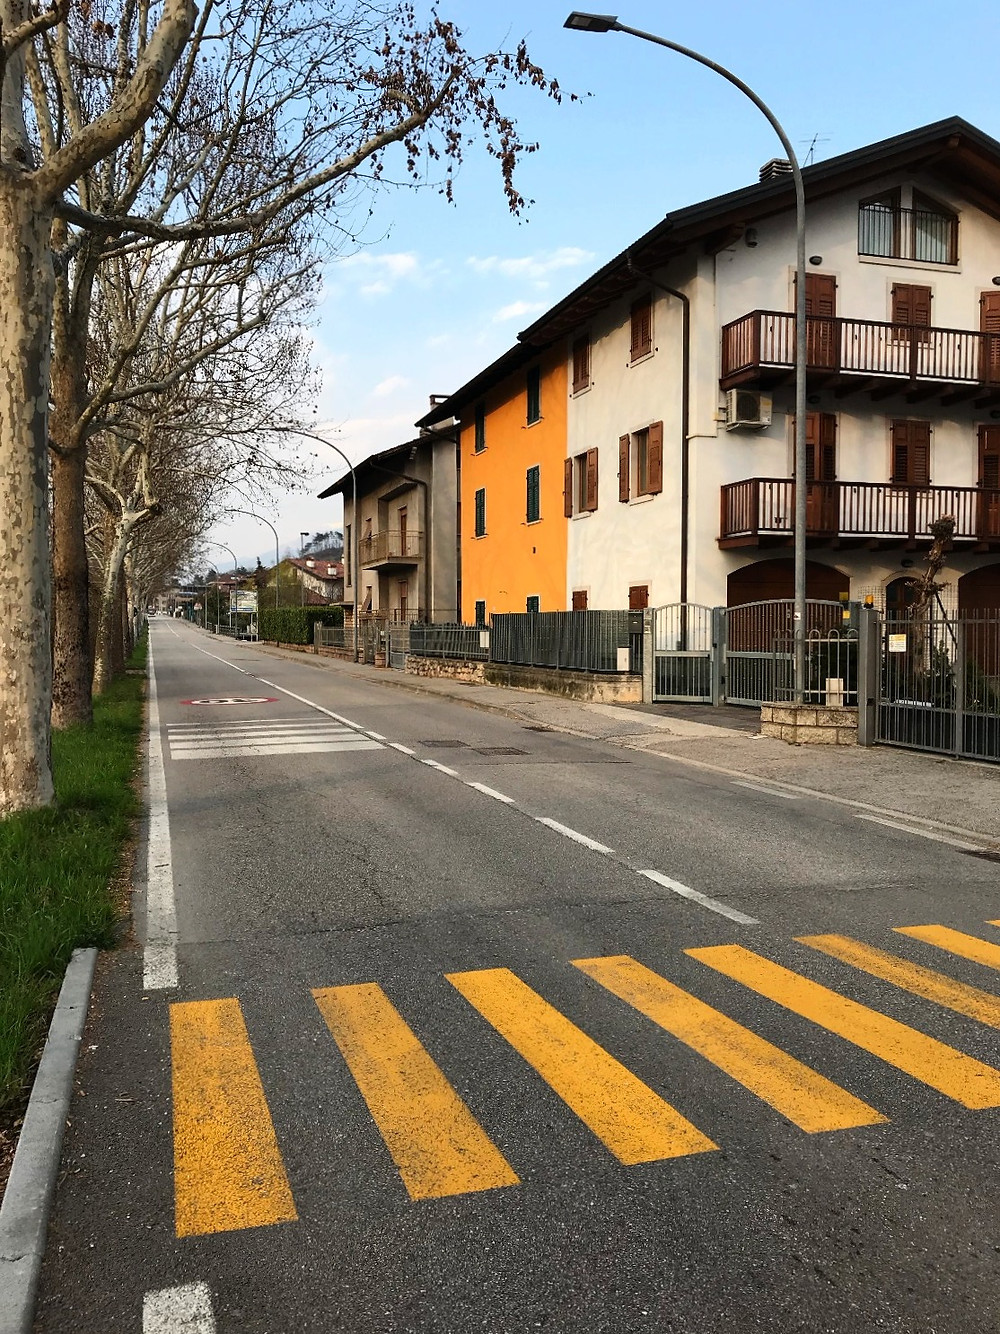 A street in the little town of Marco in Trento, Italy